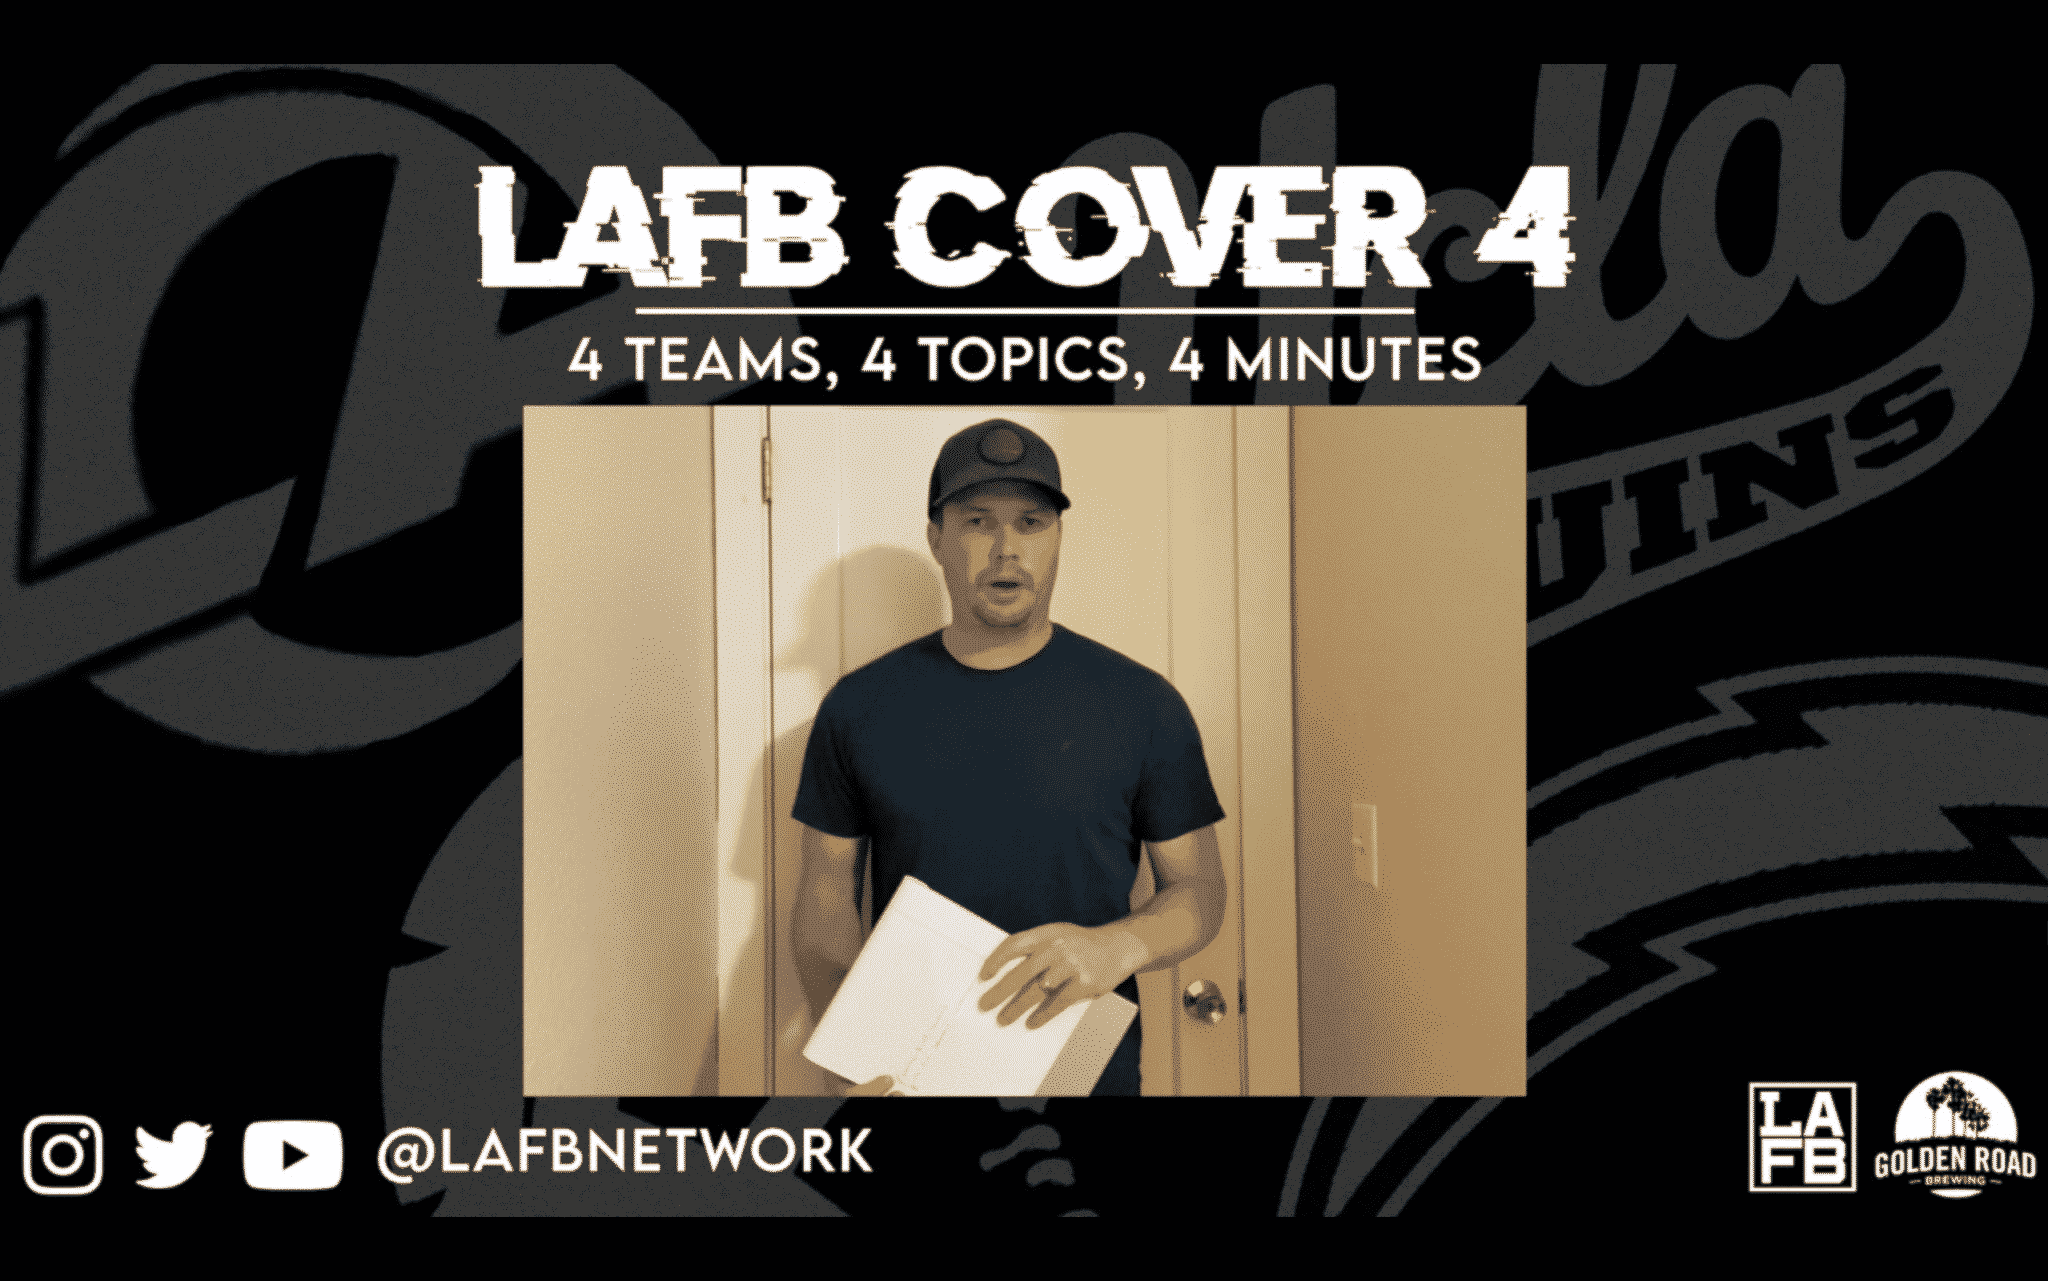 LAFB Cover 4 | 11-7-2020